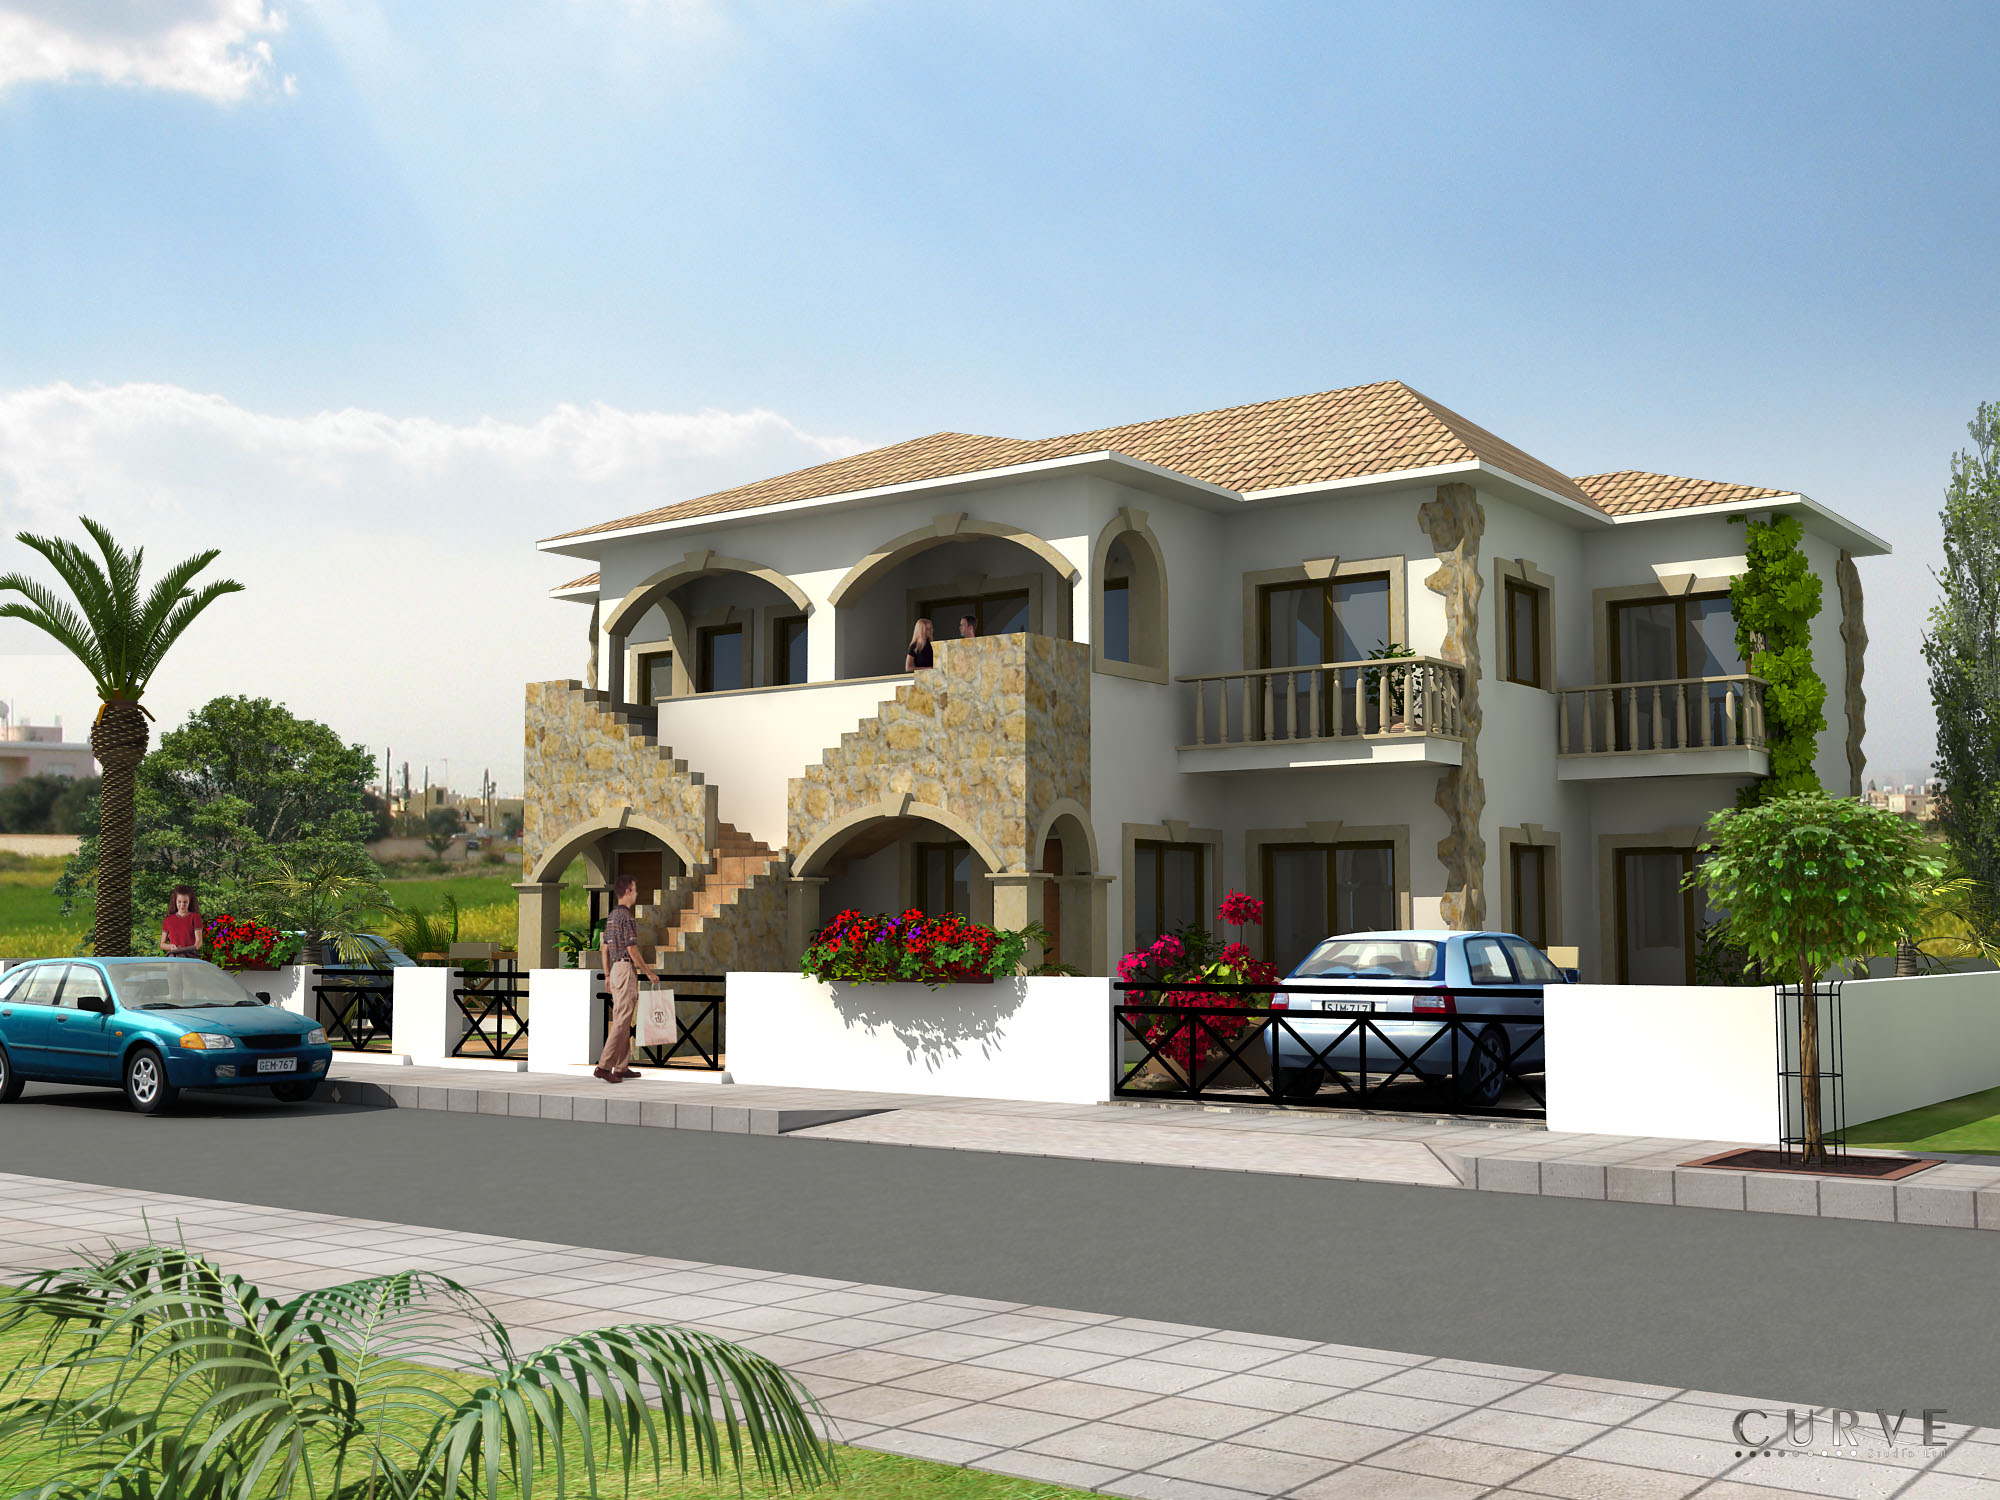 AYIA MARINA VILLAS V14 2 BEDROOM TYPE B